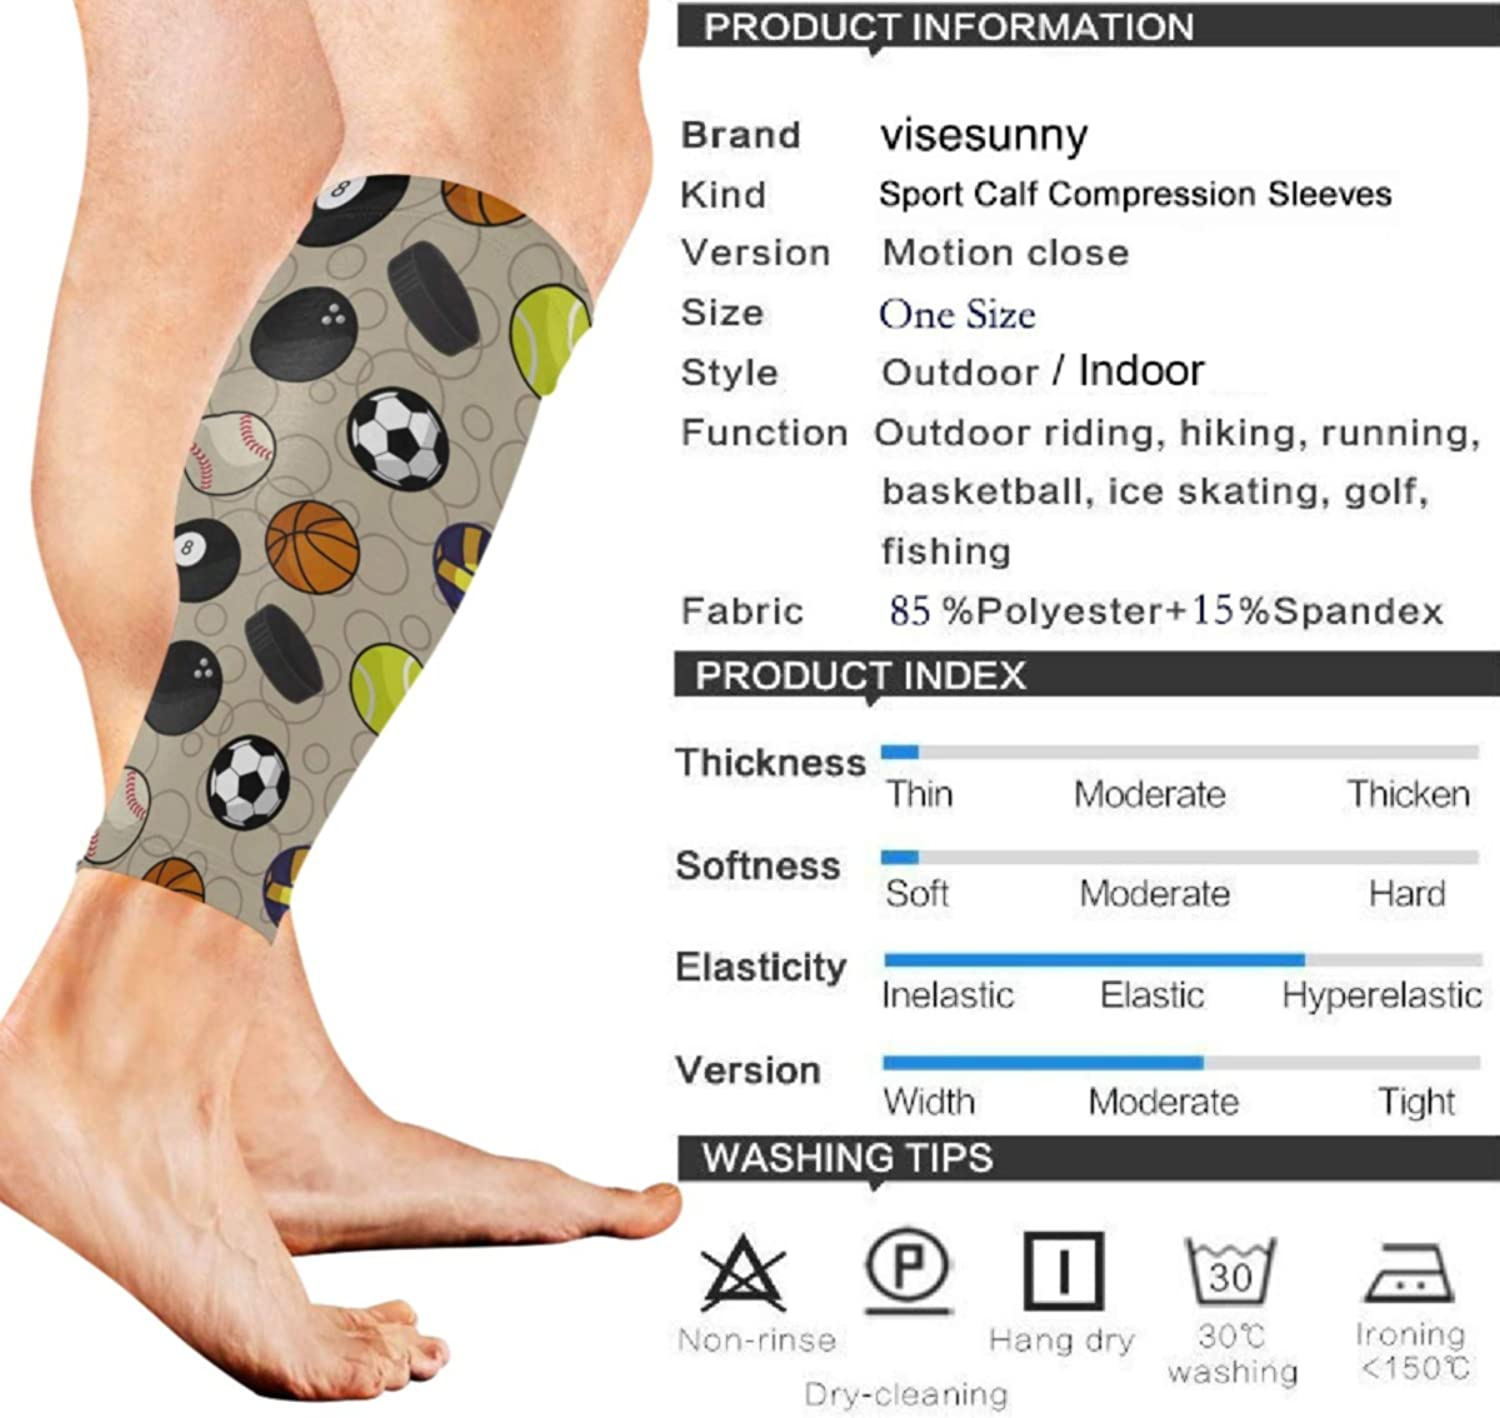 visesunny Color Sport Pattern Sports Calf Support Sleeves for Muscle Pain Relief, Improved Circulation Compression – Effective Support for Running, Jogging, Workout (1 Pair)